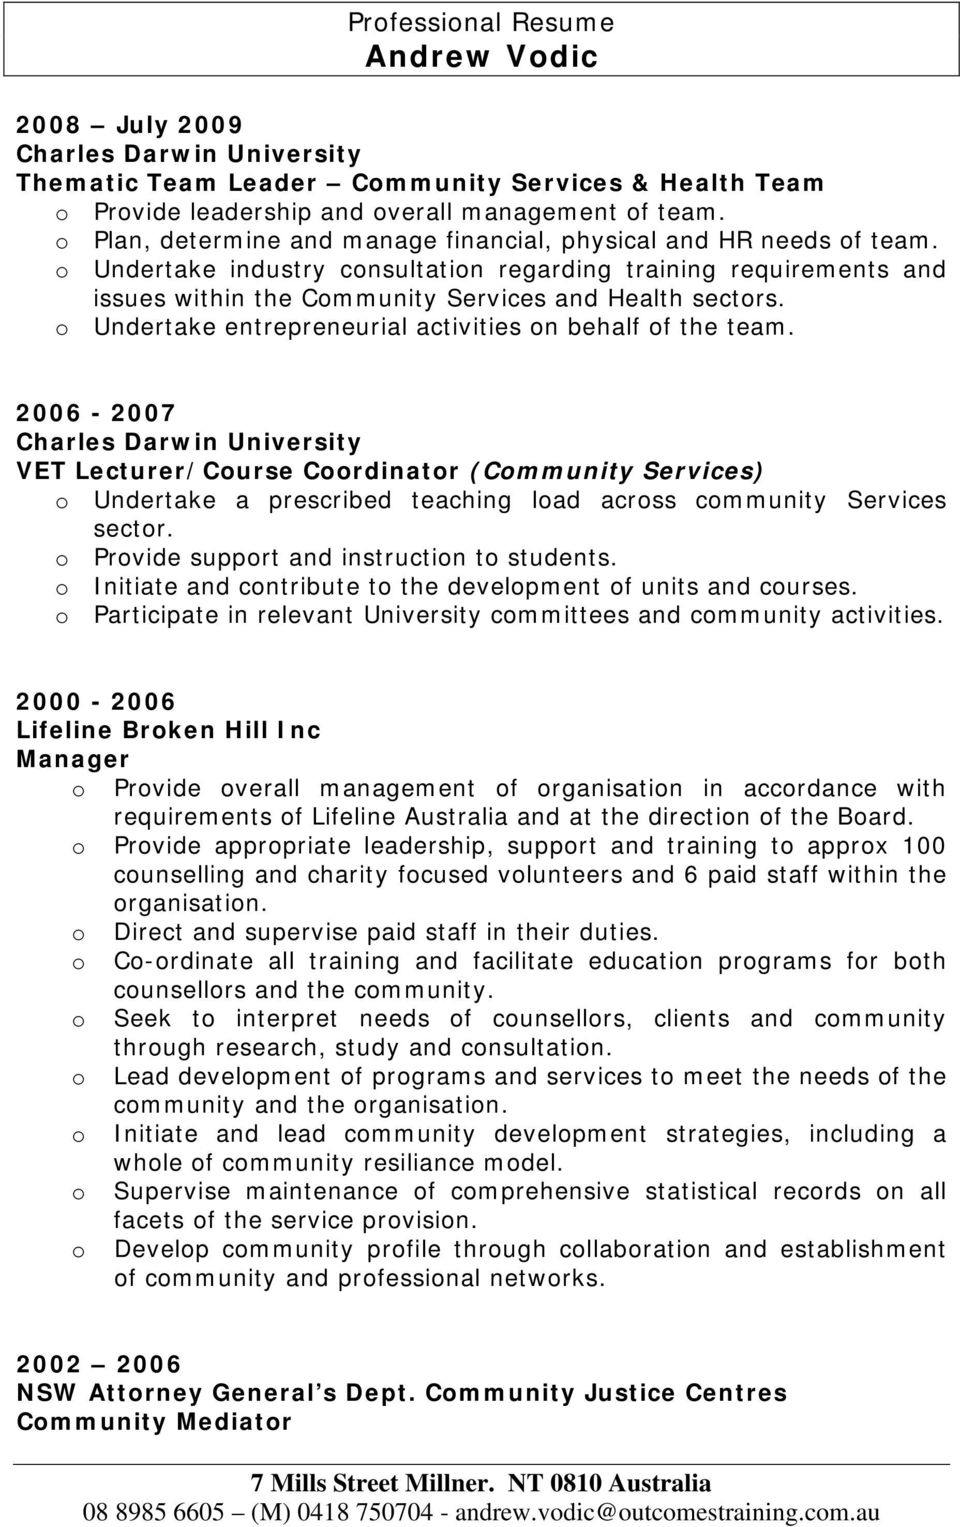 Undertake entrepreneurial activities n behalf f the team. 2006-2007 VET Lecturer/Curse Crdinatr (Cmmunity Services) Undertake a prescribed teaching lad acrss cmmunity Services sectr.